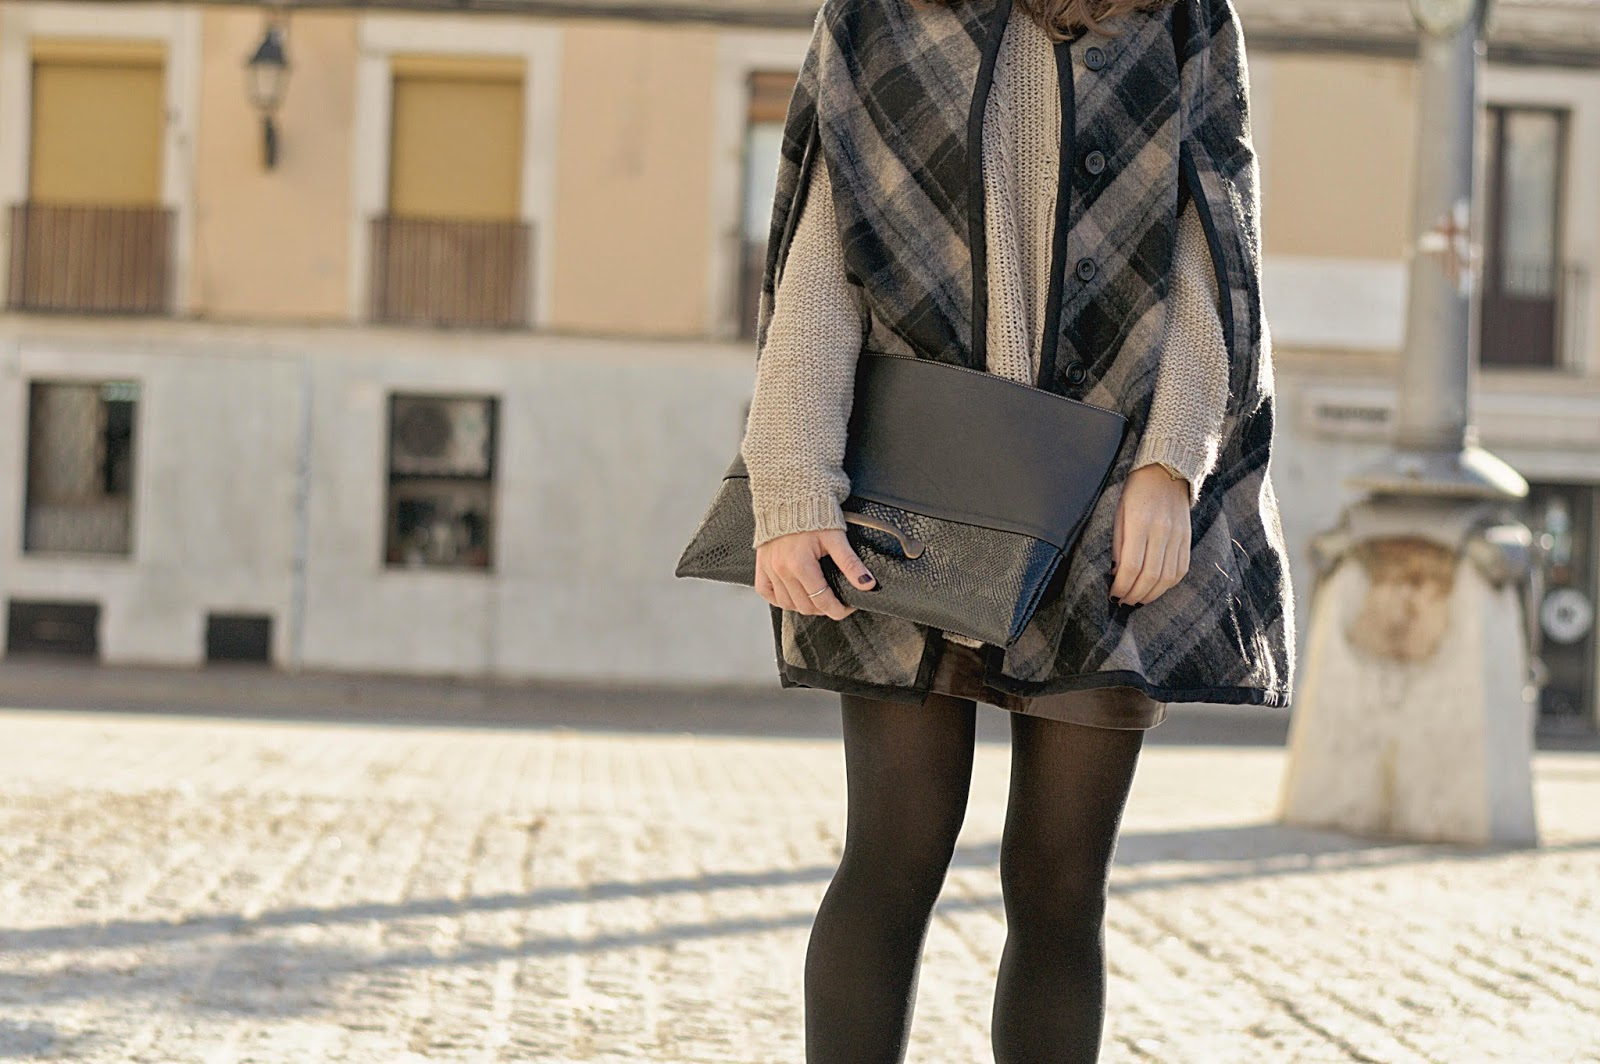 Capa y falda Zara, Jersey Mango, Malices via Chicplace Clutch, Zapatos Urban Outfiters